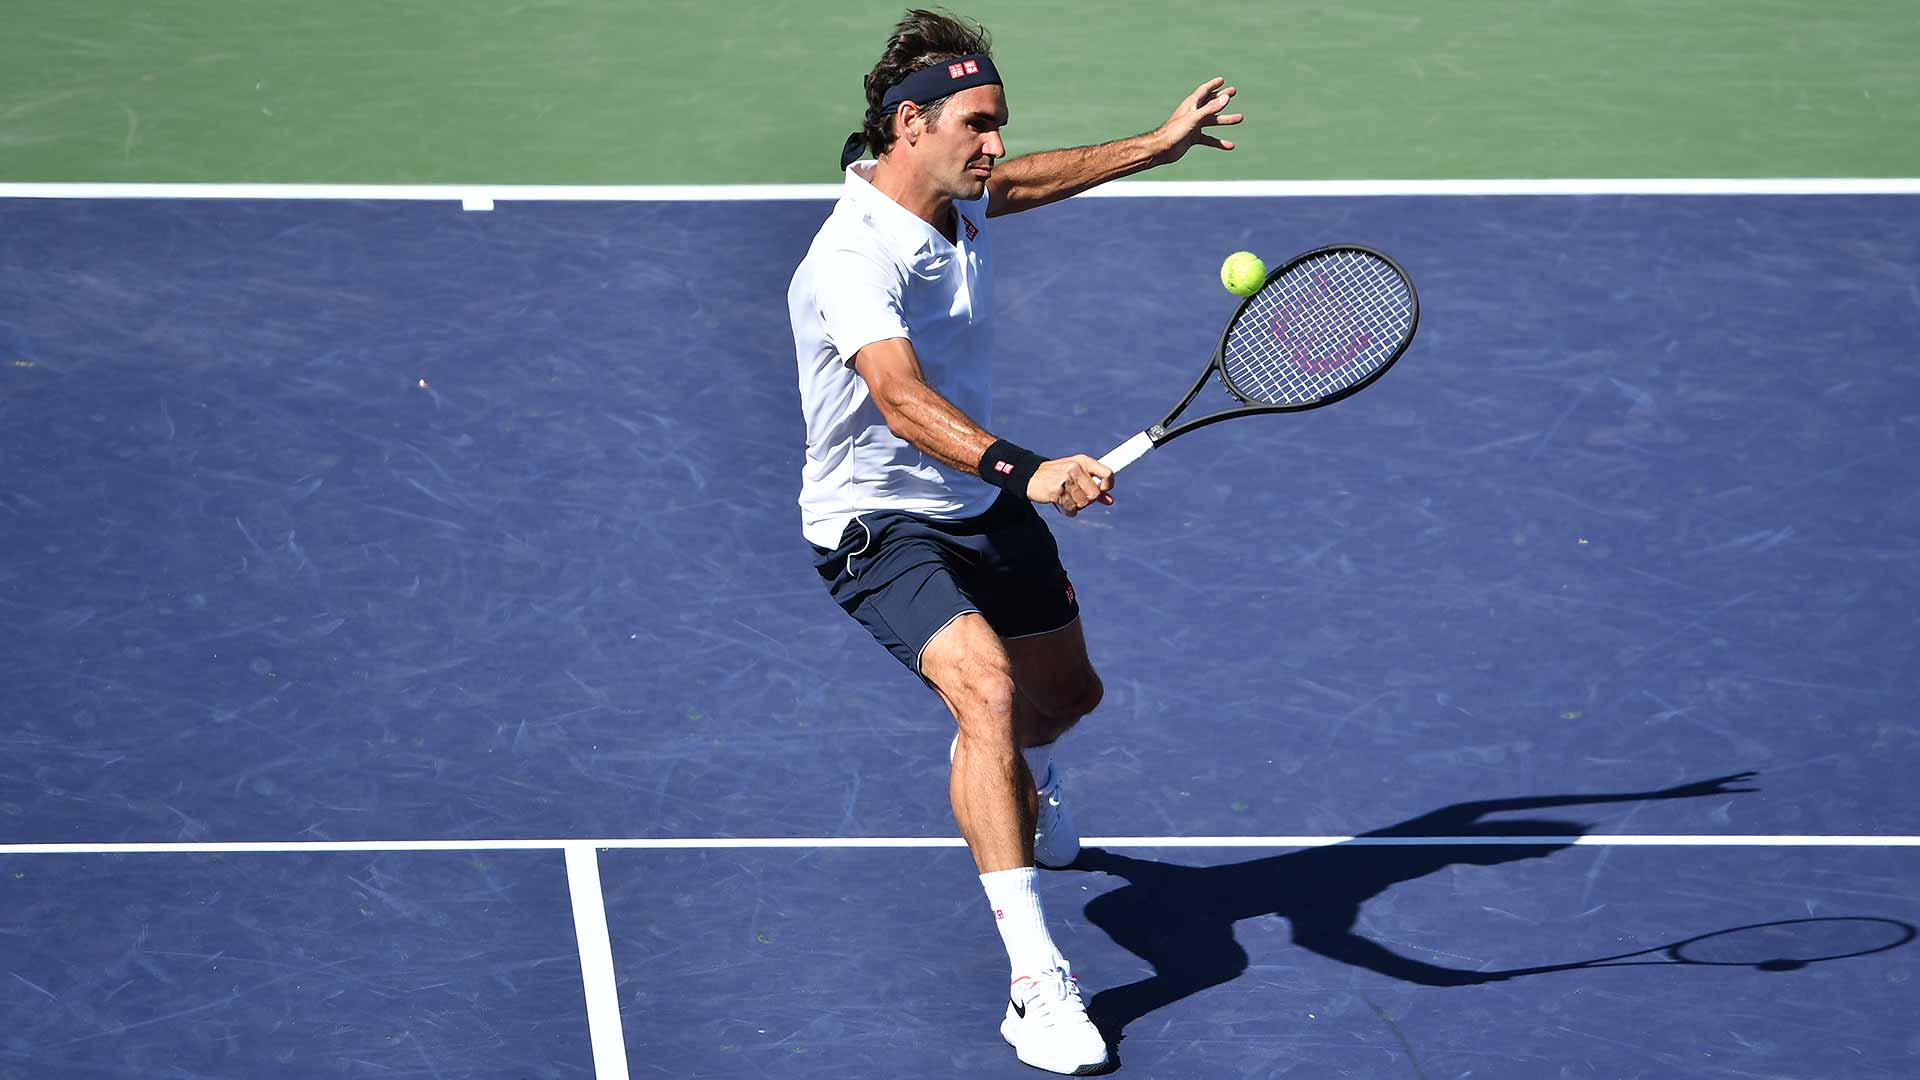 Indian Wells Open: Federer beats Stan Wawrinka to reach 4th round